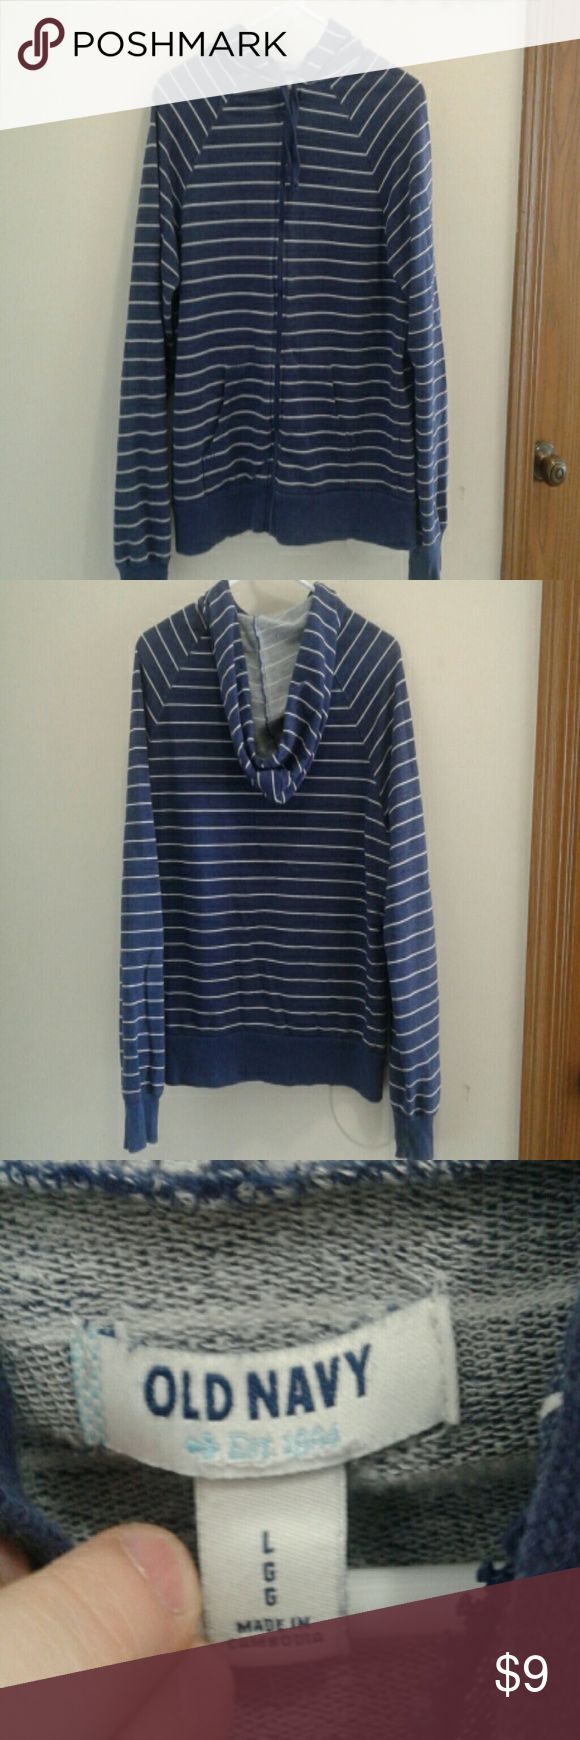 Womens Zipper and Hooded Sweatshirt Navy Blue and White Striped.  L.  Old Navy.  Worn, but fair condition.  Faded, but that is how it was when bought brand new.  Picked inside on back.  Left arm seem has a spot that is coming undone.  I do not have to know how to sew.  Sure it is an easy fix.  Smoke free home. Old Navy Tops Sweatshirts & Hoodies